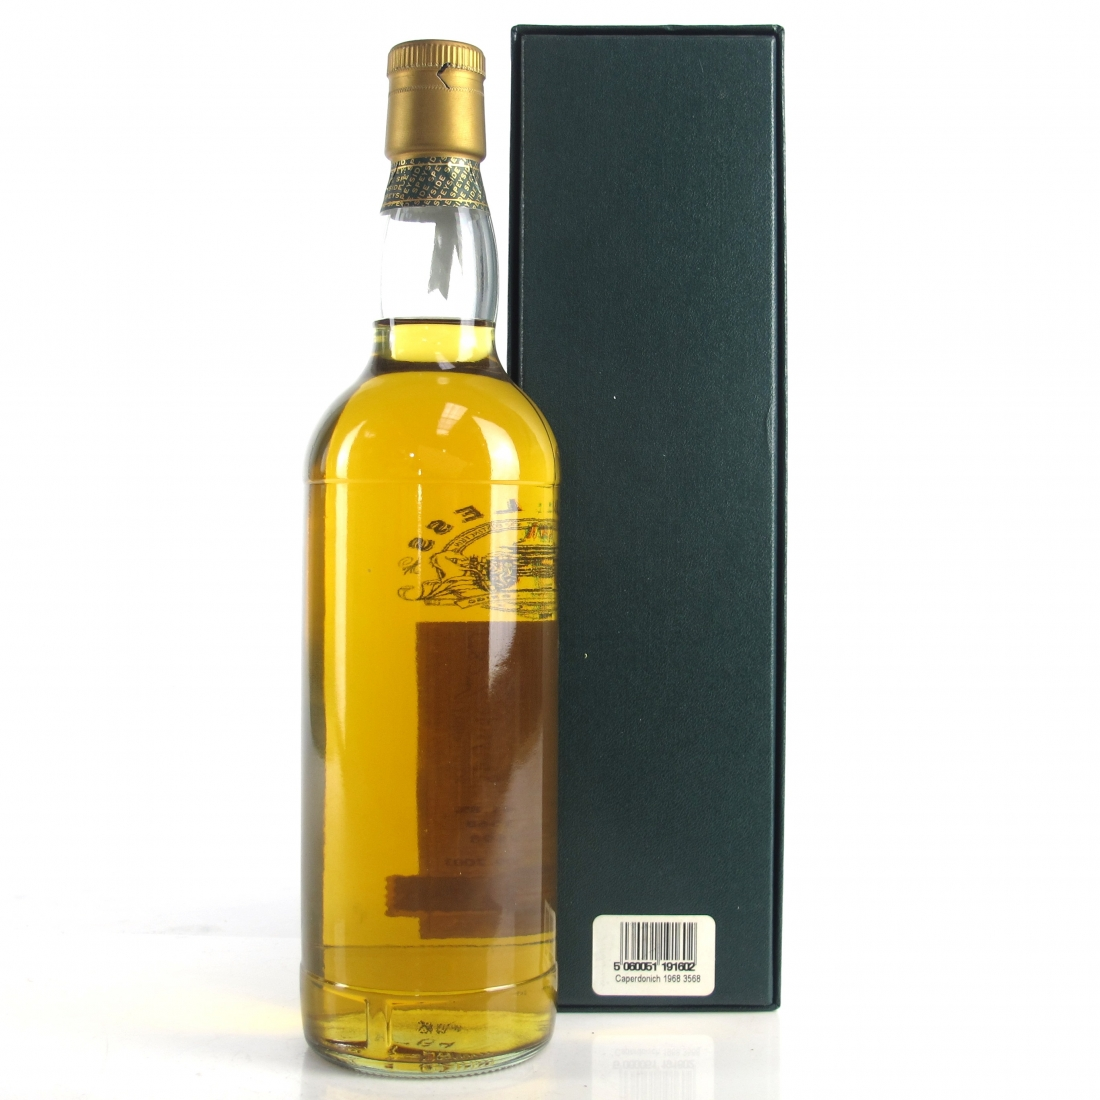 Caperdonich 1968 Duncan Taylor 34 Year Old